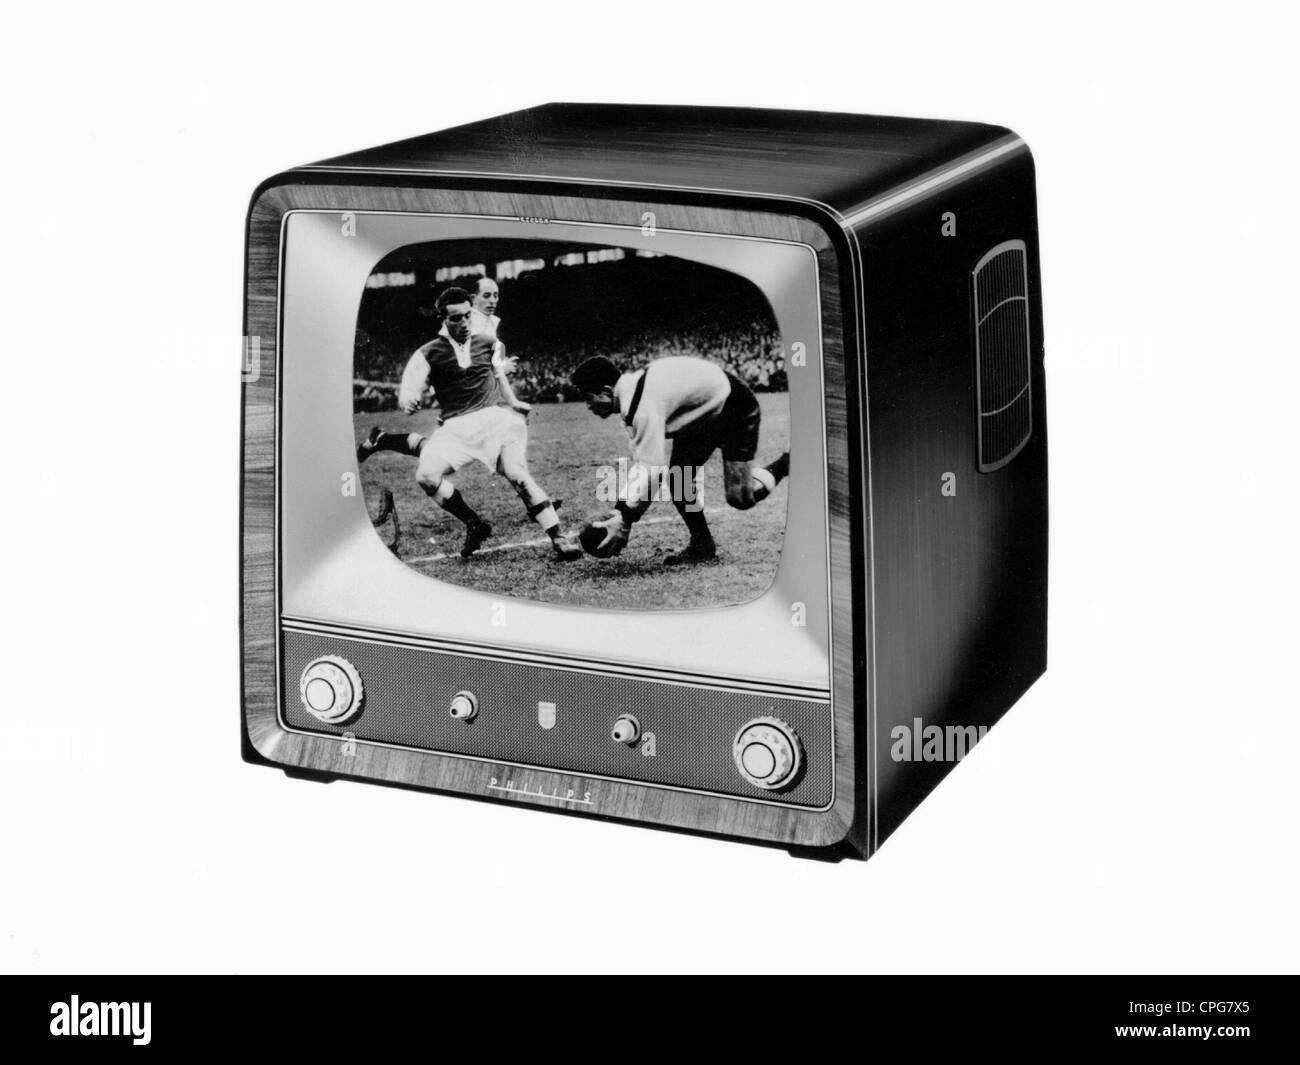 Philips Tv Stock Photos Philips Tv Stock Images Alamy # Prix Table Tele